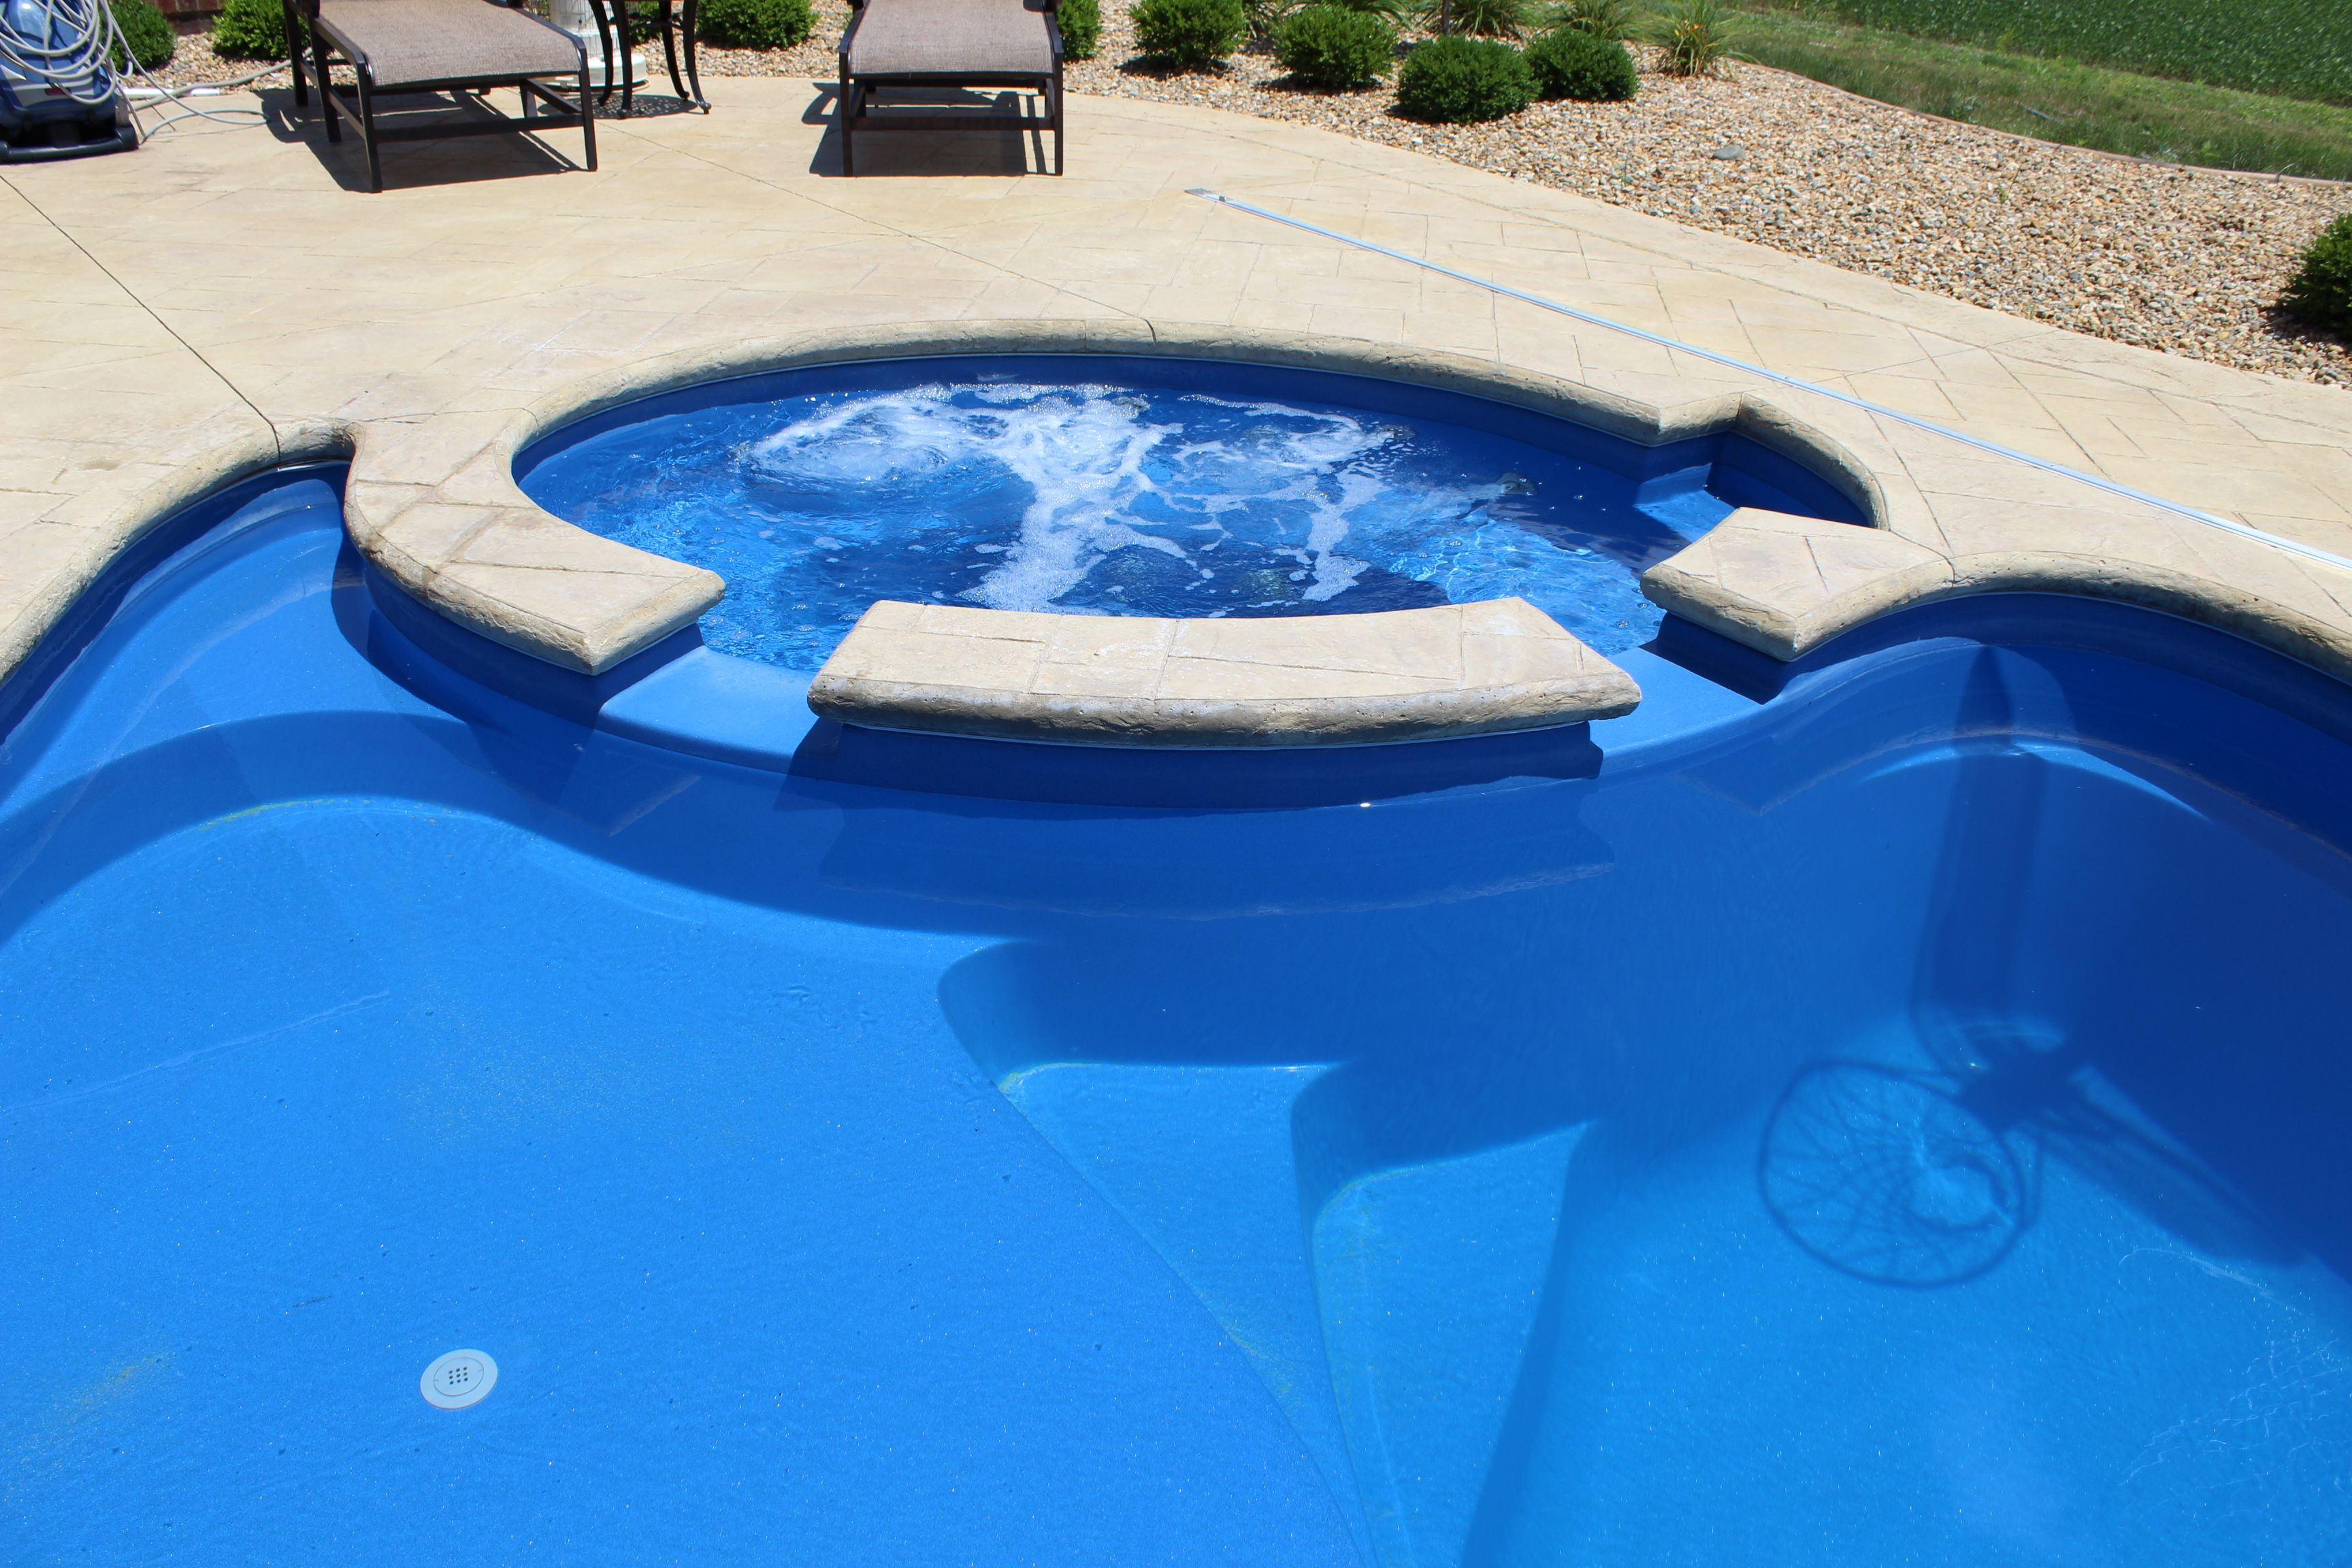 Ready To Live Life At Its Best Then You May Want To Consider The Imagine Pools Brilliant Swimming Pool Construction Pool Construction Cool Swimming Pools